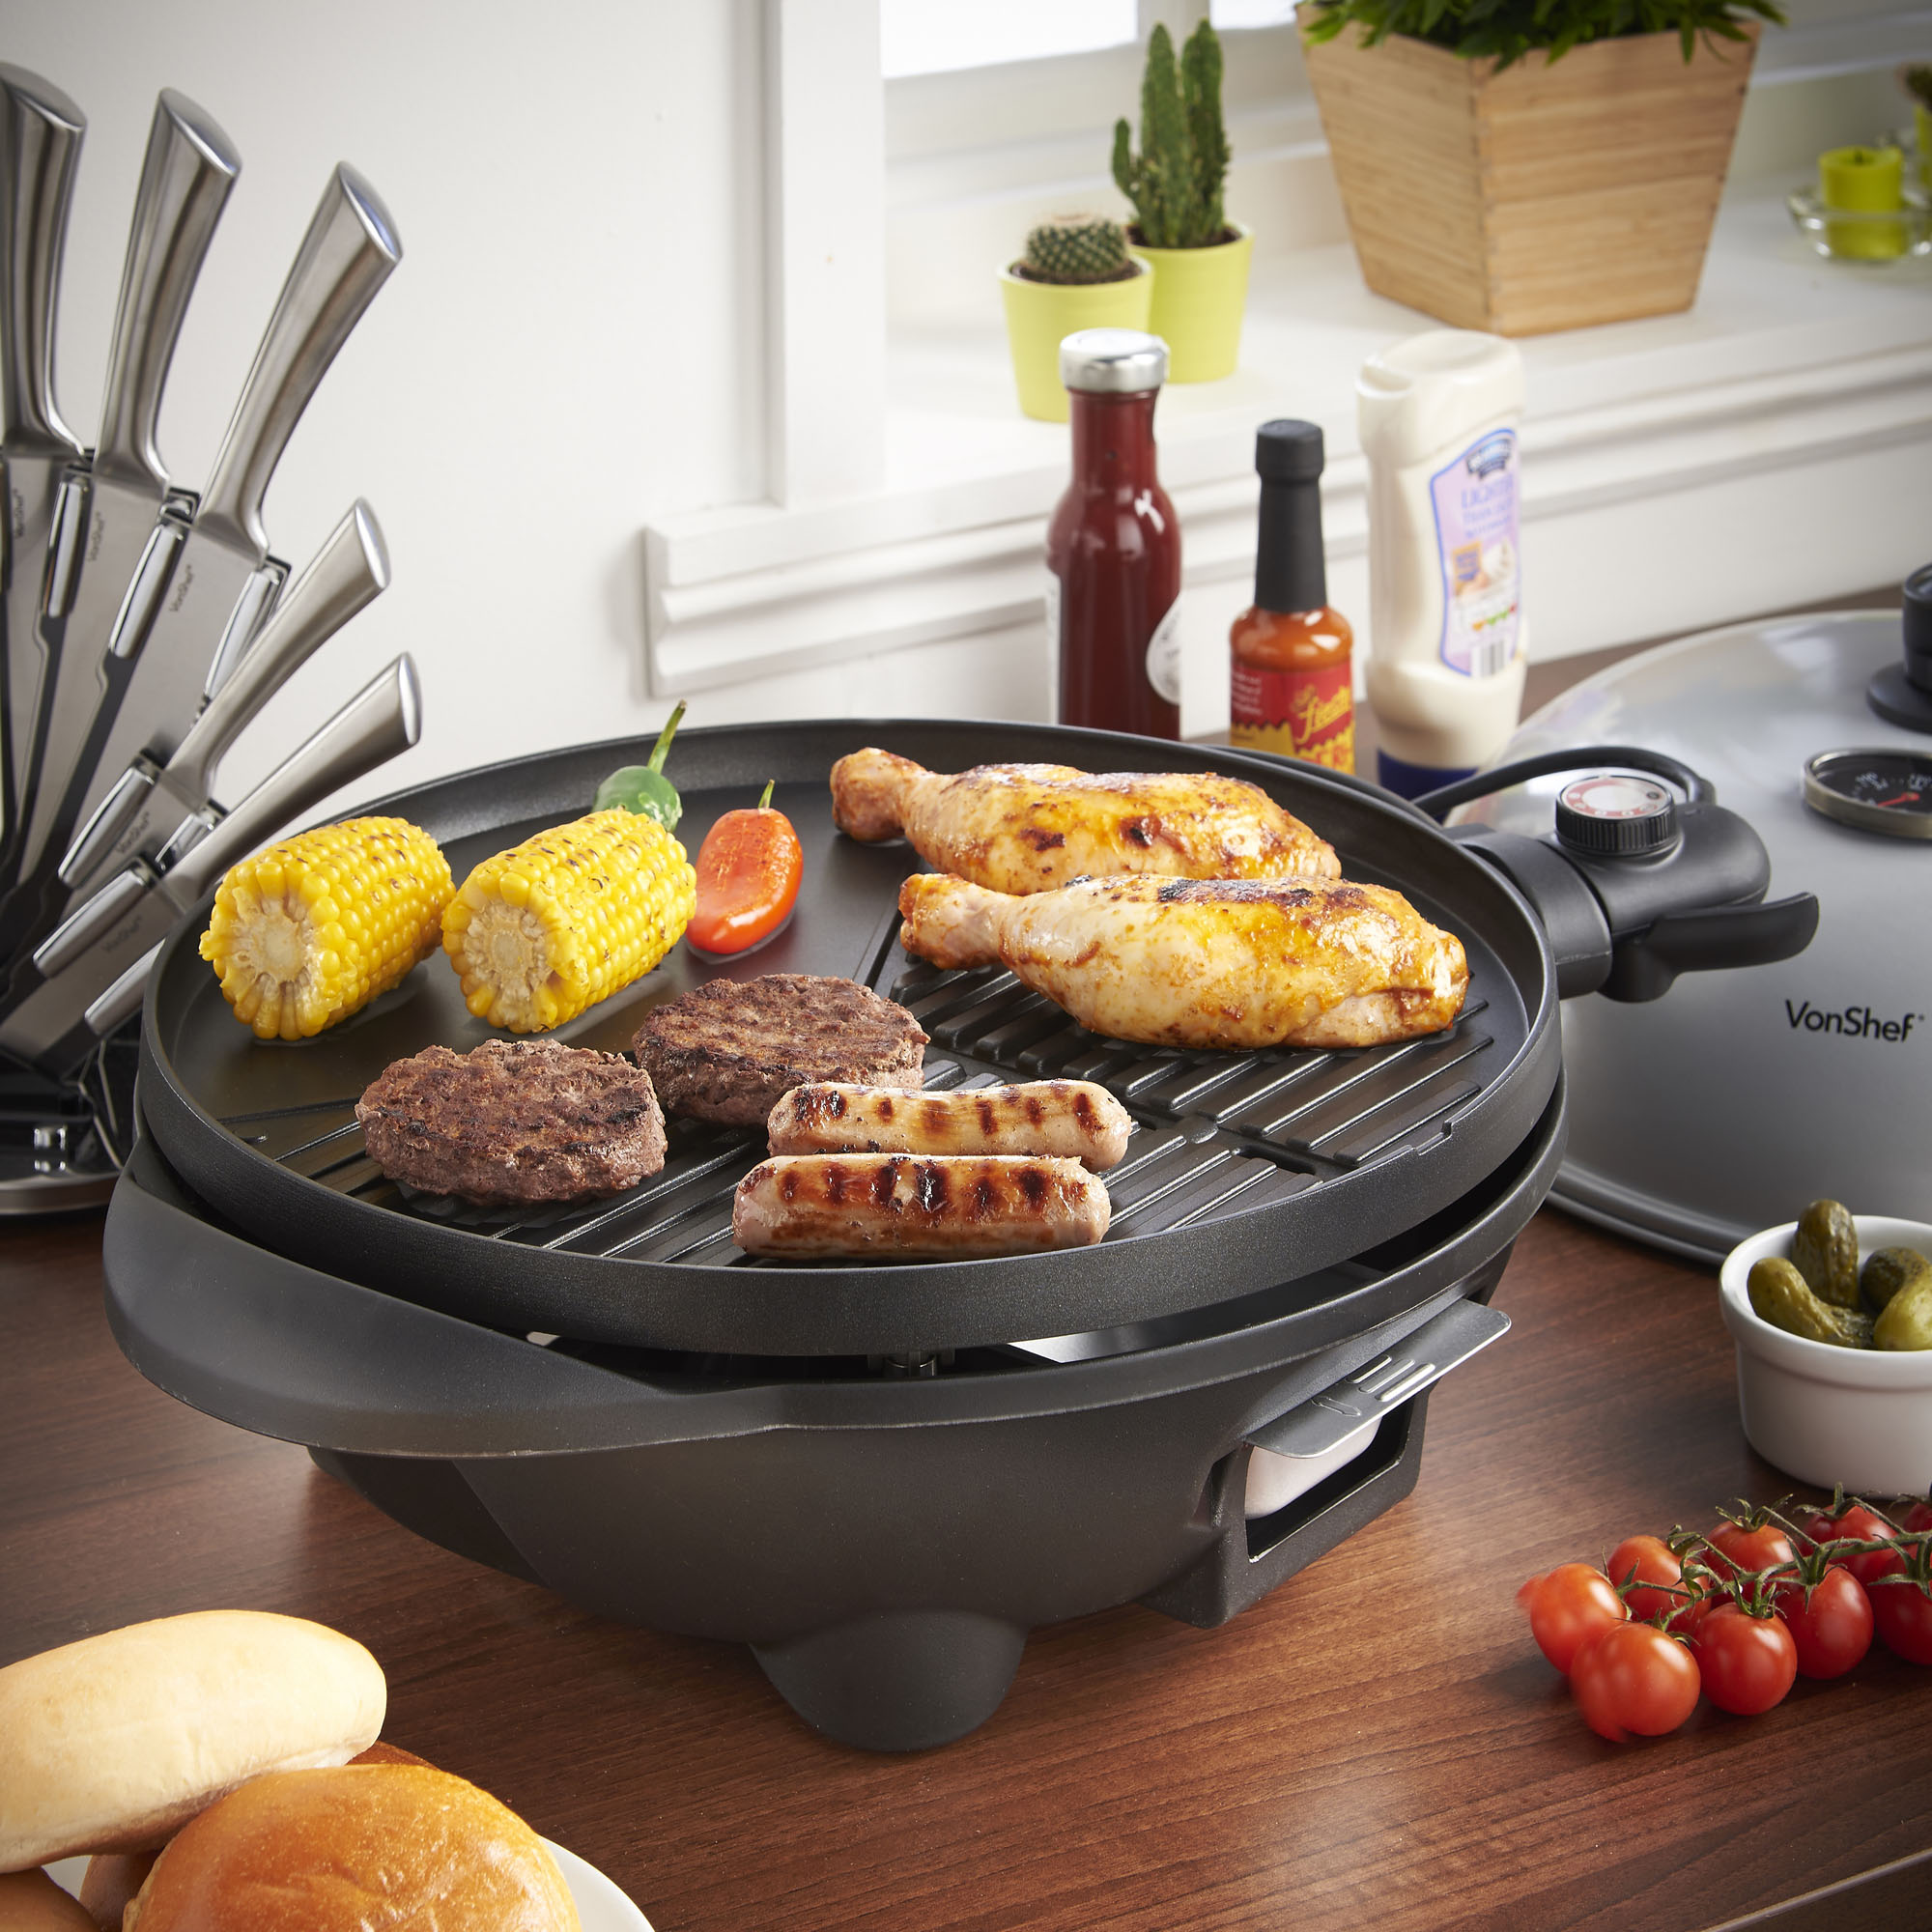 VonShef Electric BBQ Barbecue, Indoor Outdoor Grill